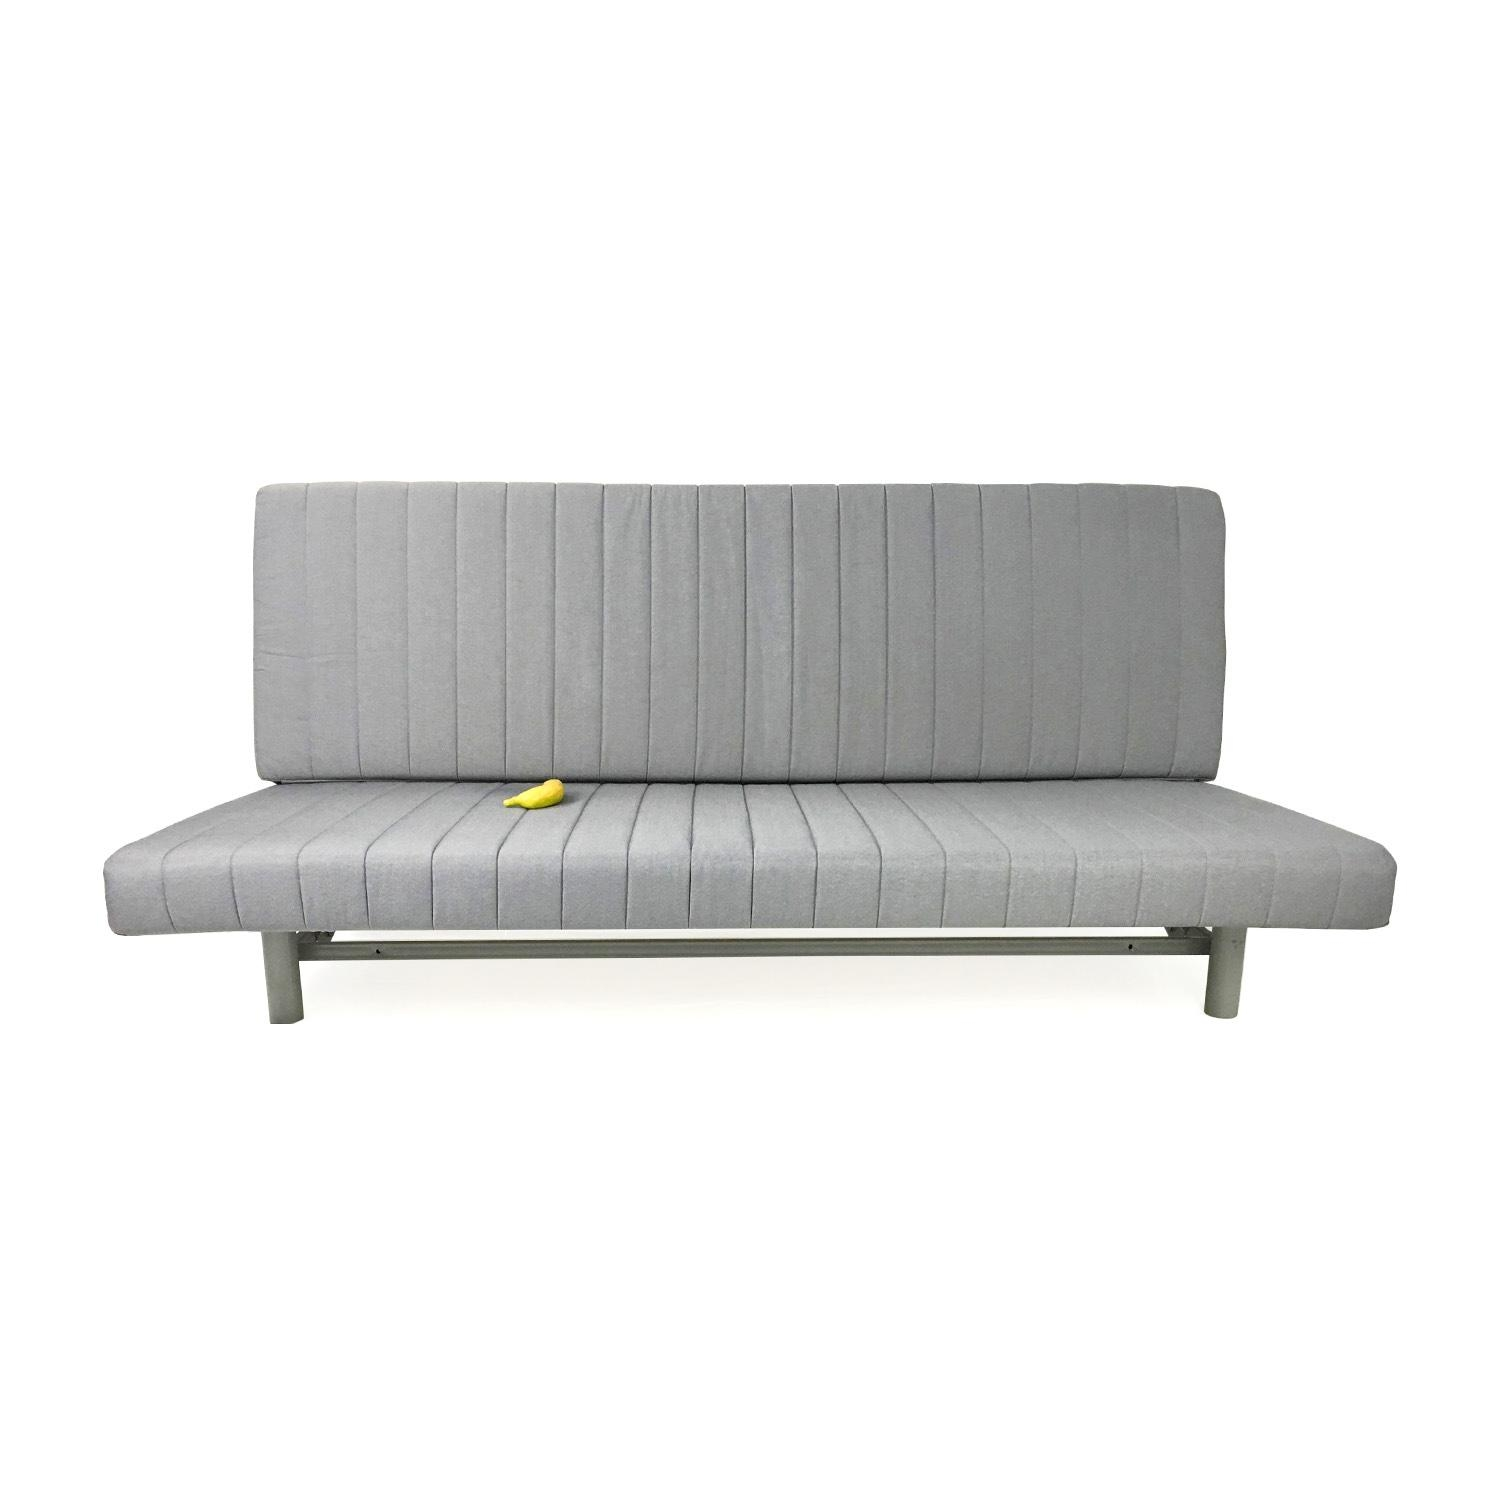 Sofas: Ikea Couch Bed | Target Sofa Bed | Futon Ikea Inside Target Couch Beds (Image 17 of 20)